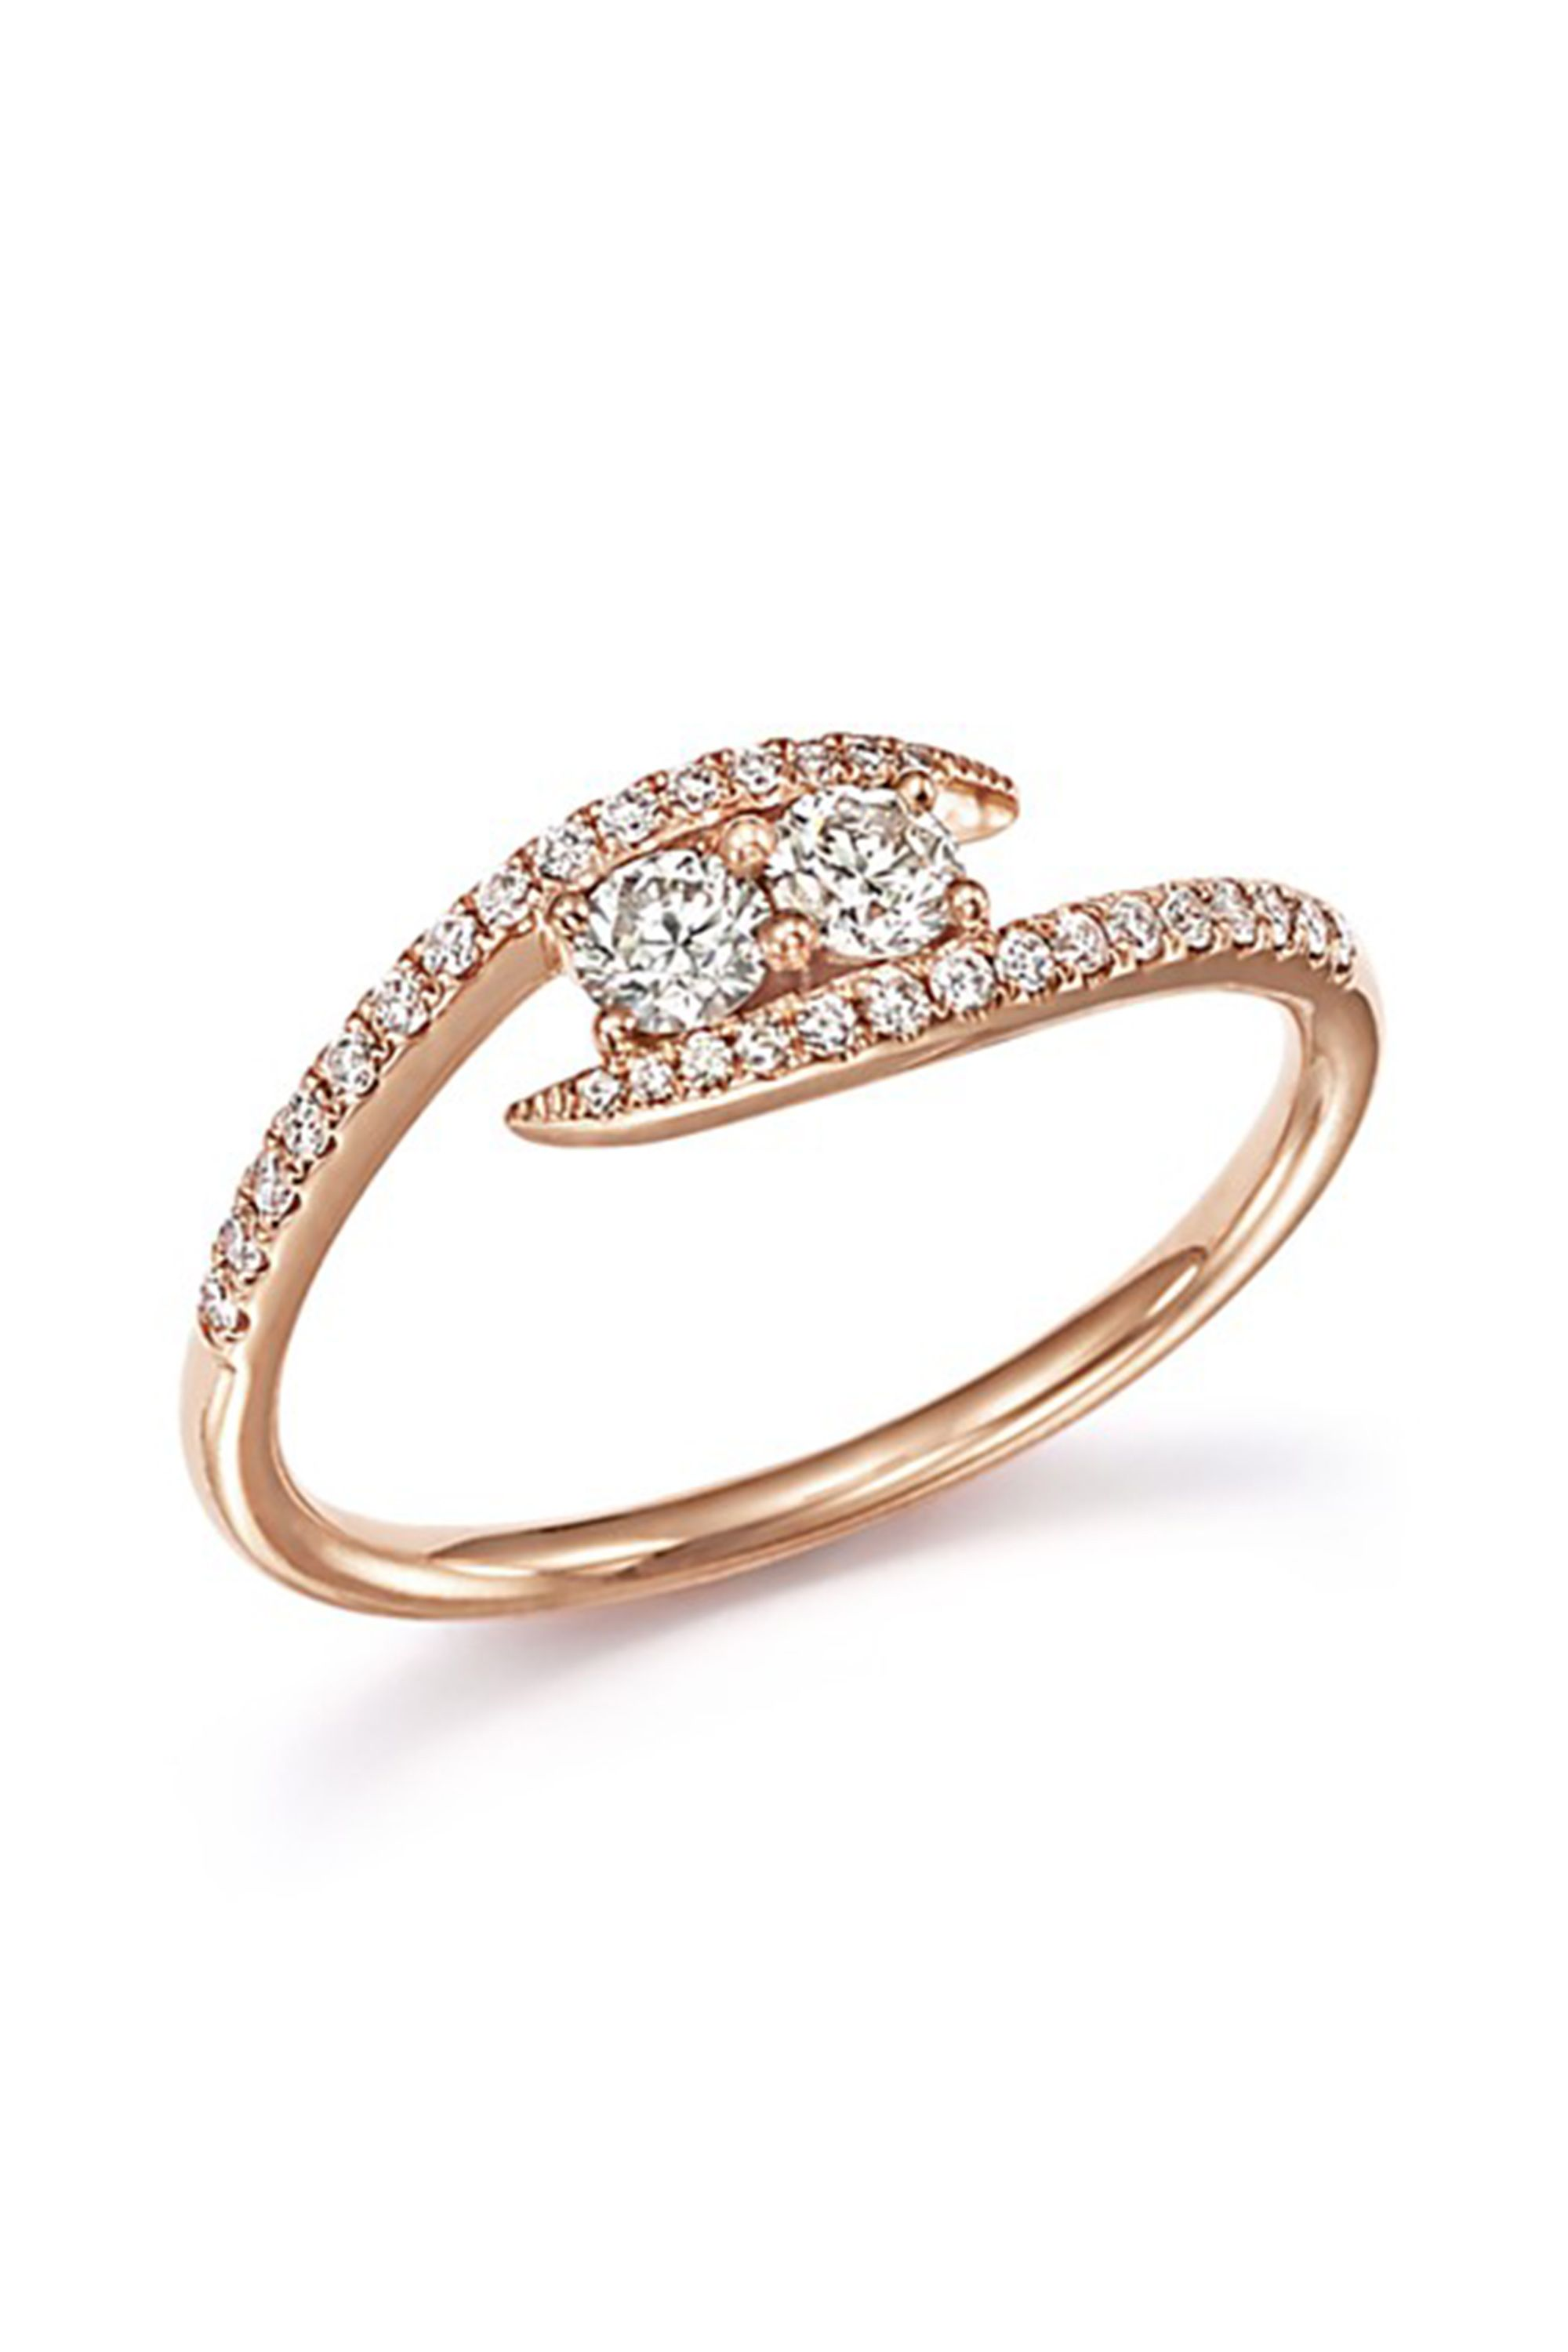 jewellers rings online shop large diamond ersa gold engagement home giannis white ring